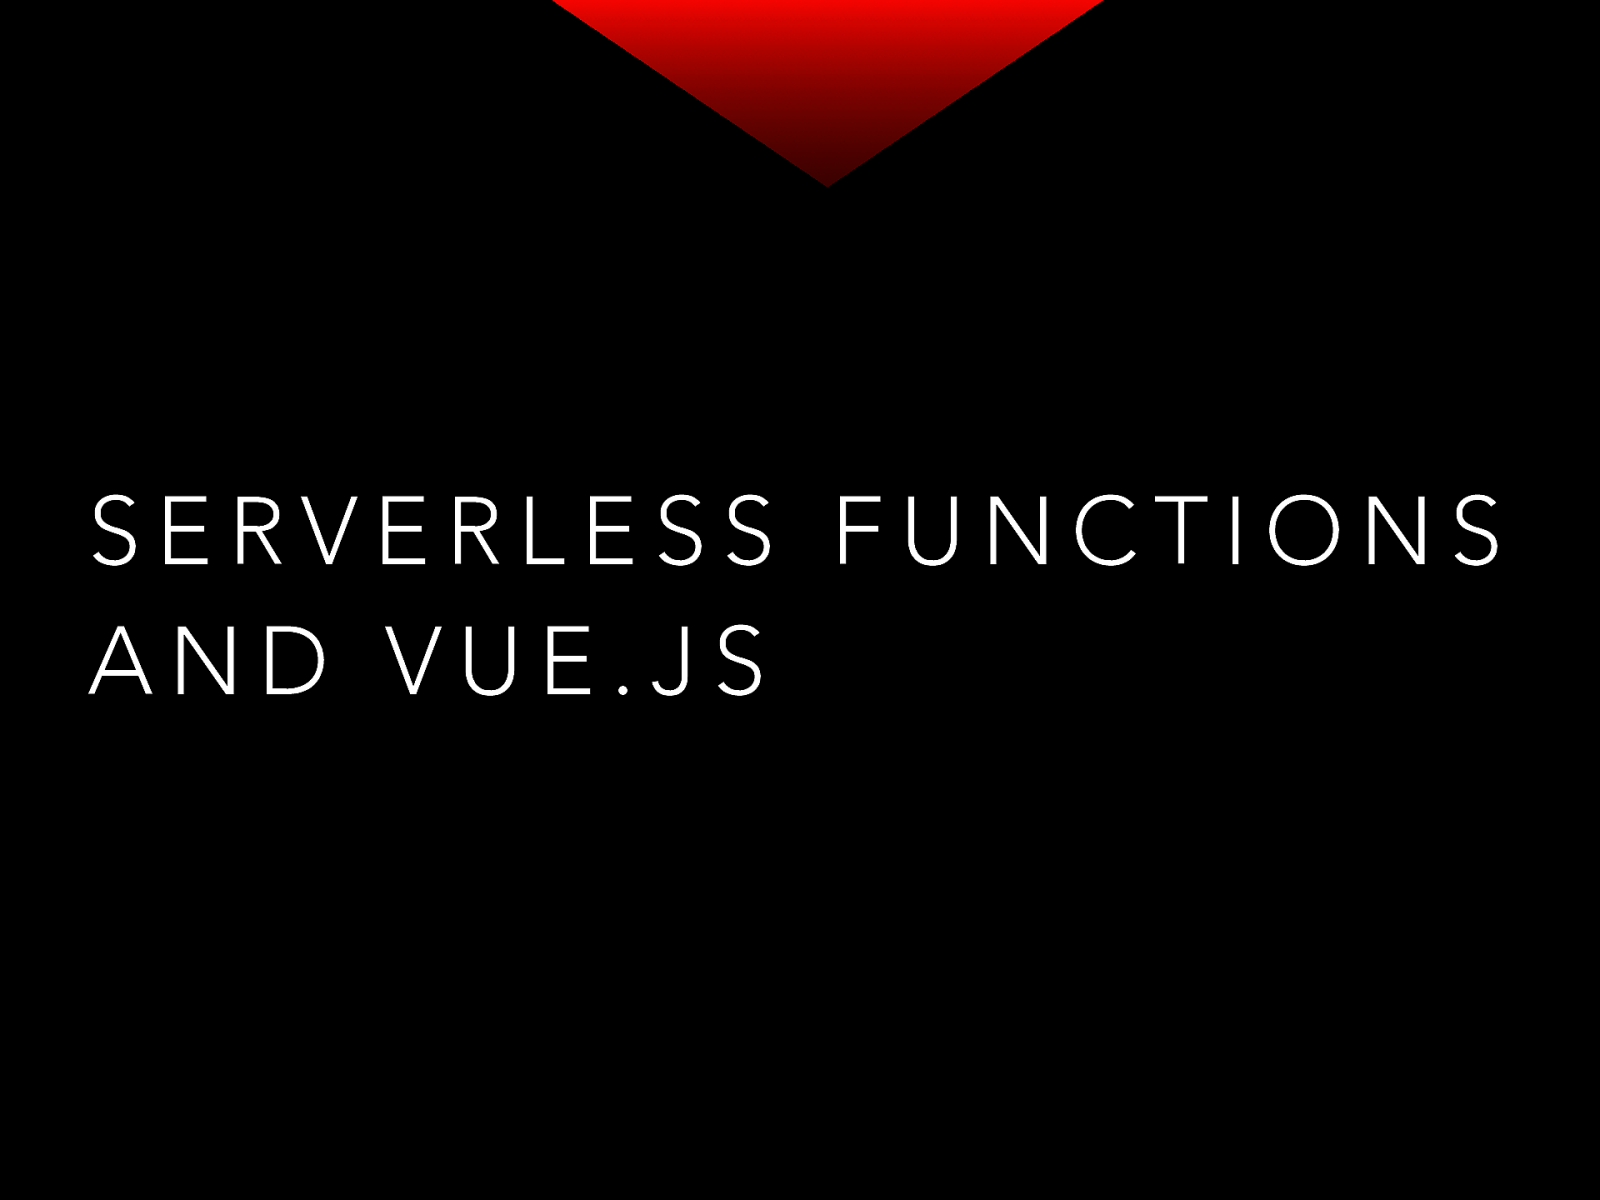 Serverless Functions and Vue.js